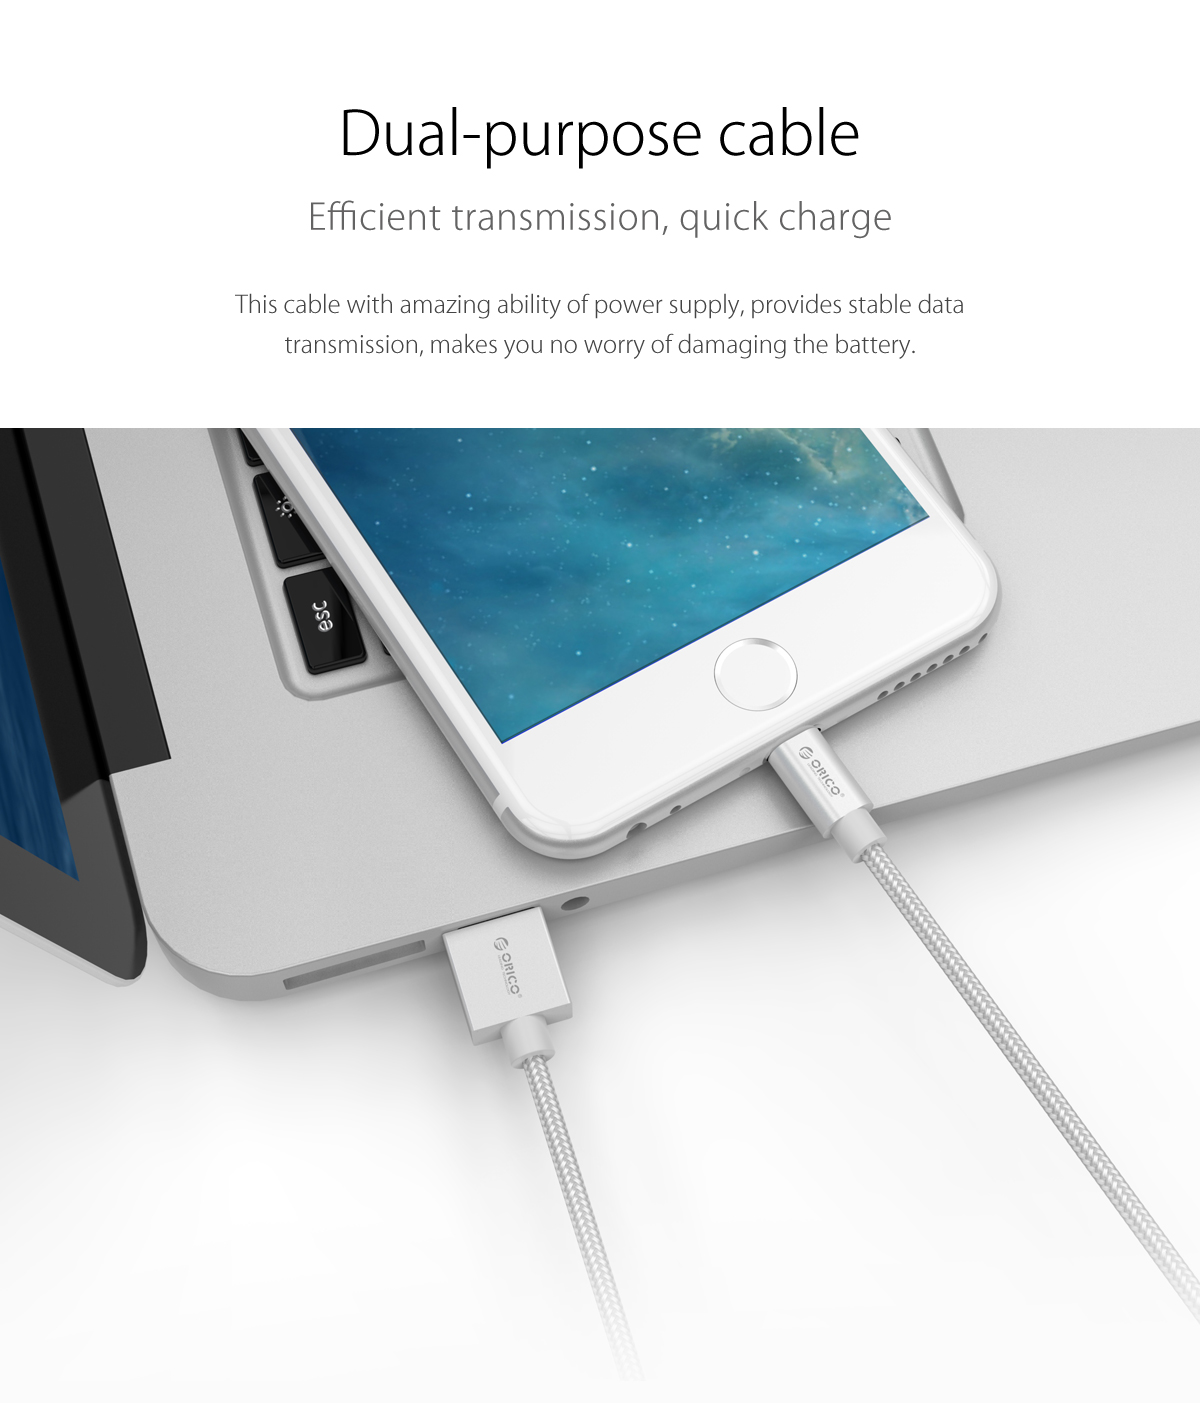 dual-purpose cable